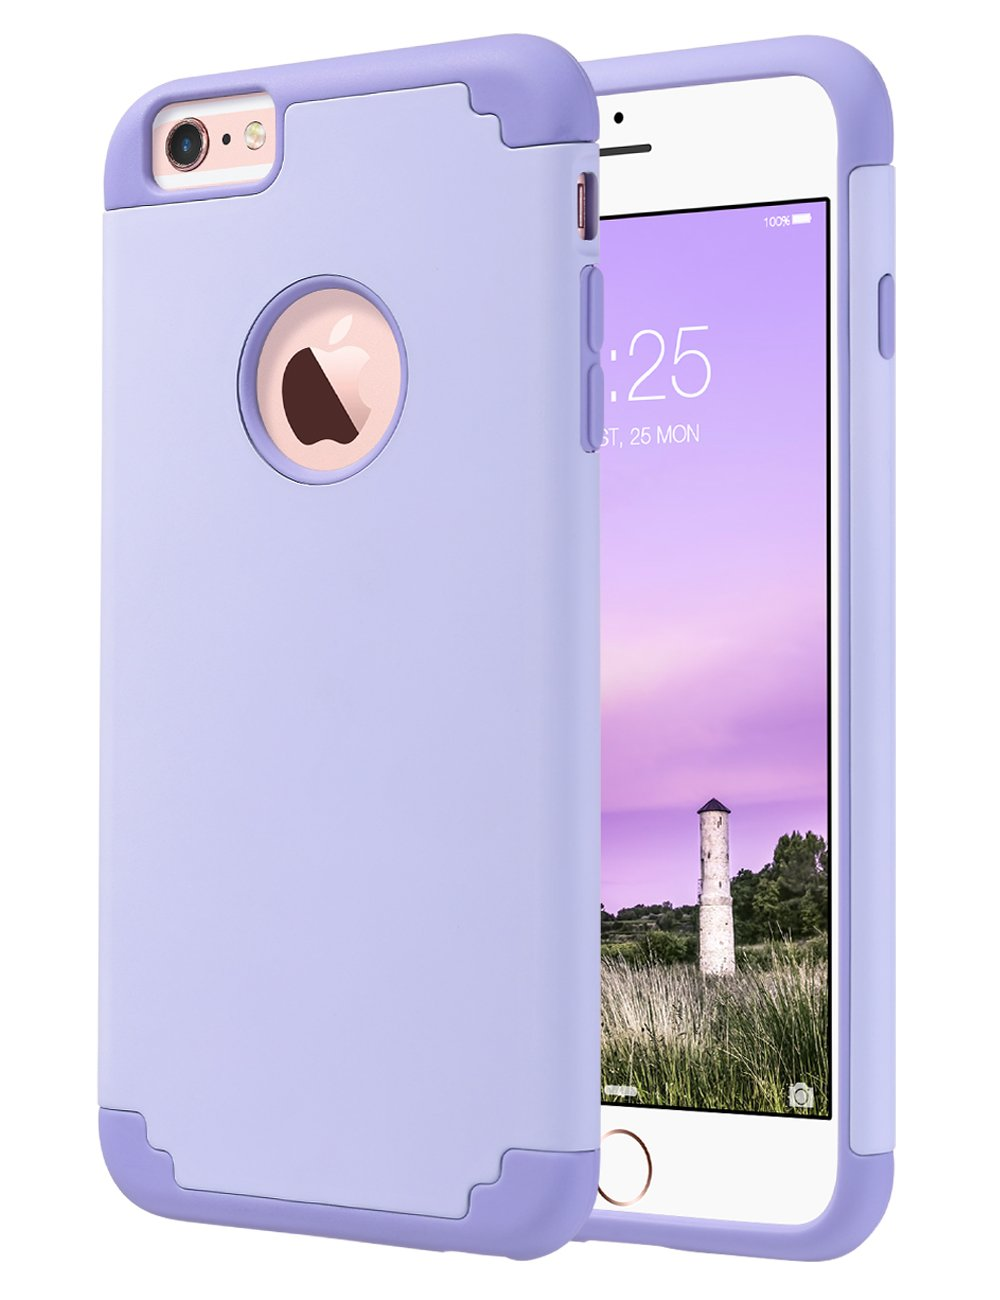 ULAK iPhone 6S Case Silicone,iPhone 6 Case, Slim Dual Layer Soft Silicone & Hard Back Cover Bumper Protective Shock-Absorption & Skid-Proof Anti-Scratch Case for Apple iPhone 6/6S 4.7-Lavender/Purple